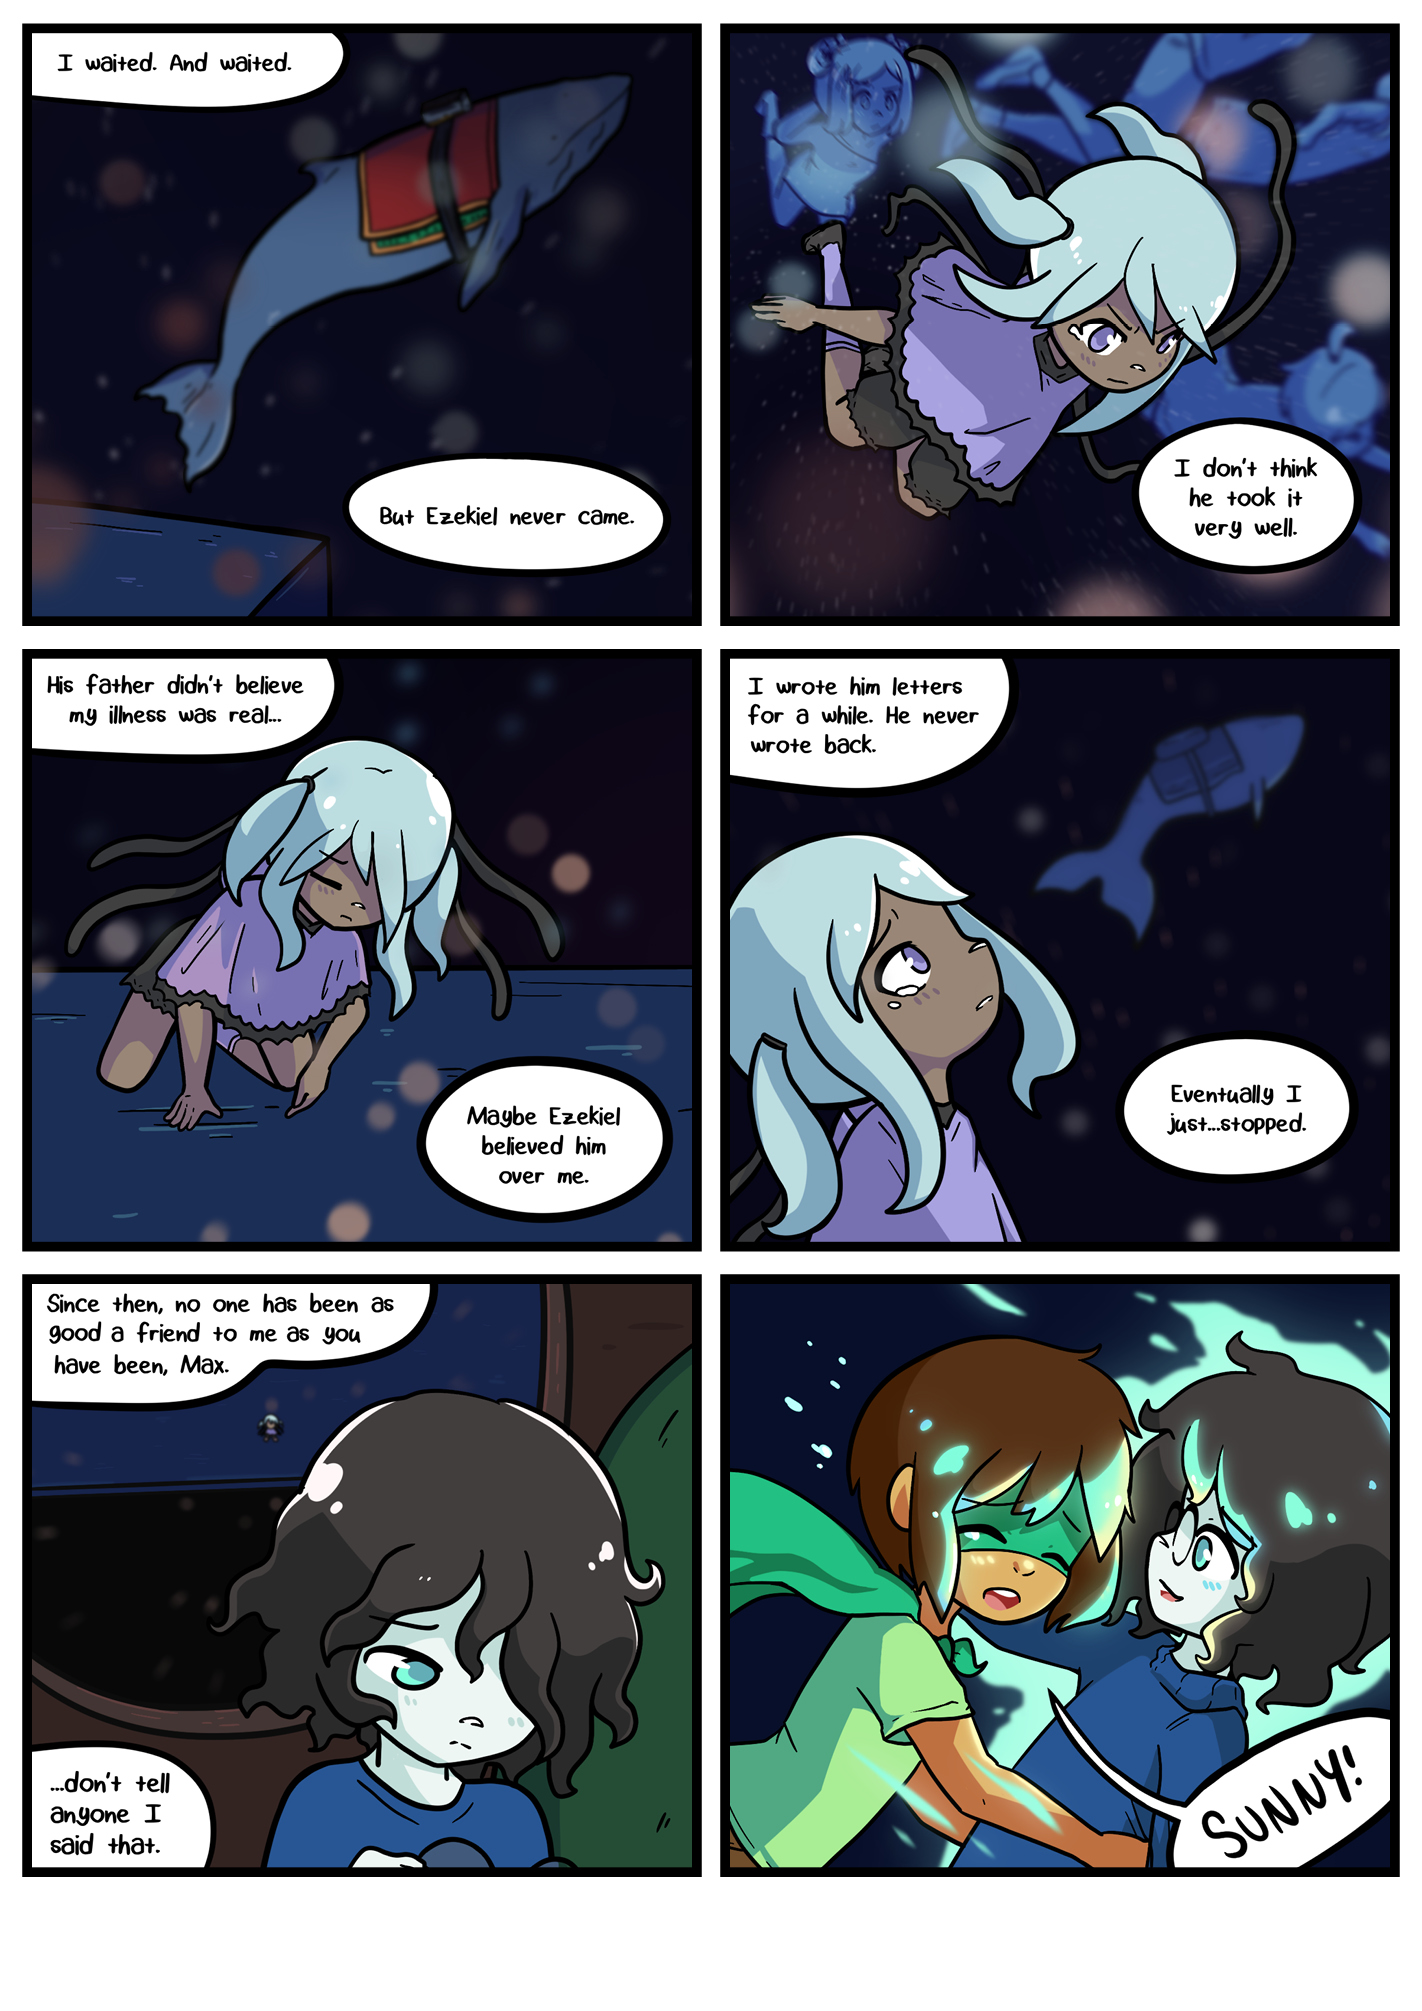 Seasick the underwater adventure comic, chapter 2 page 65 full